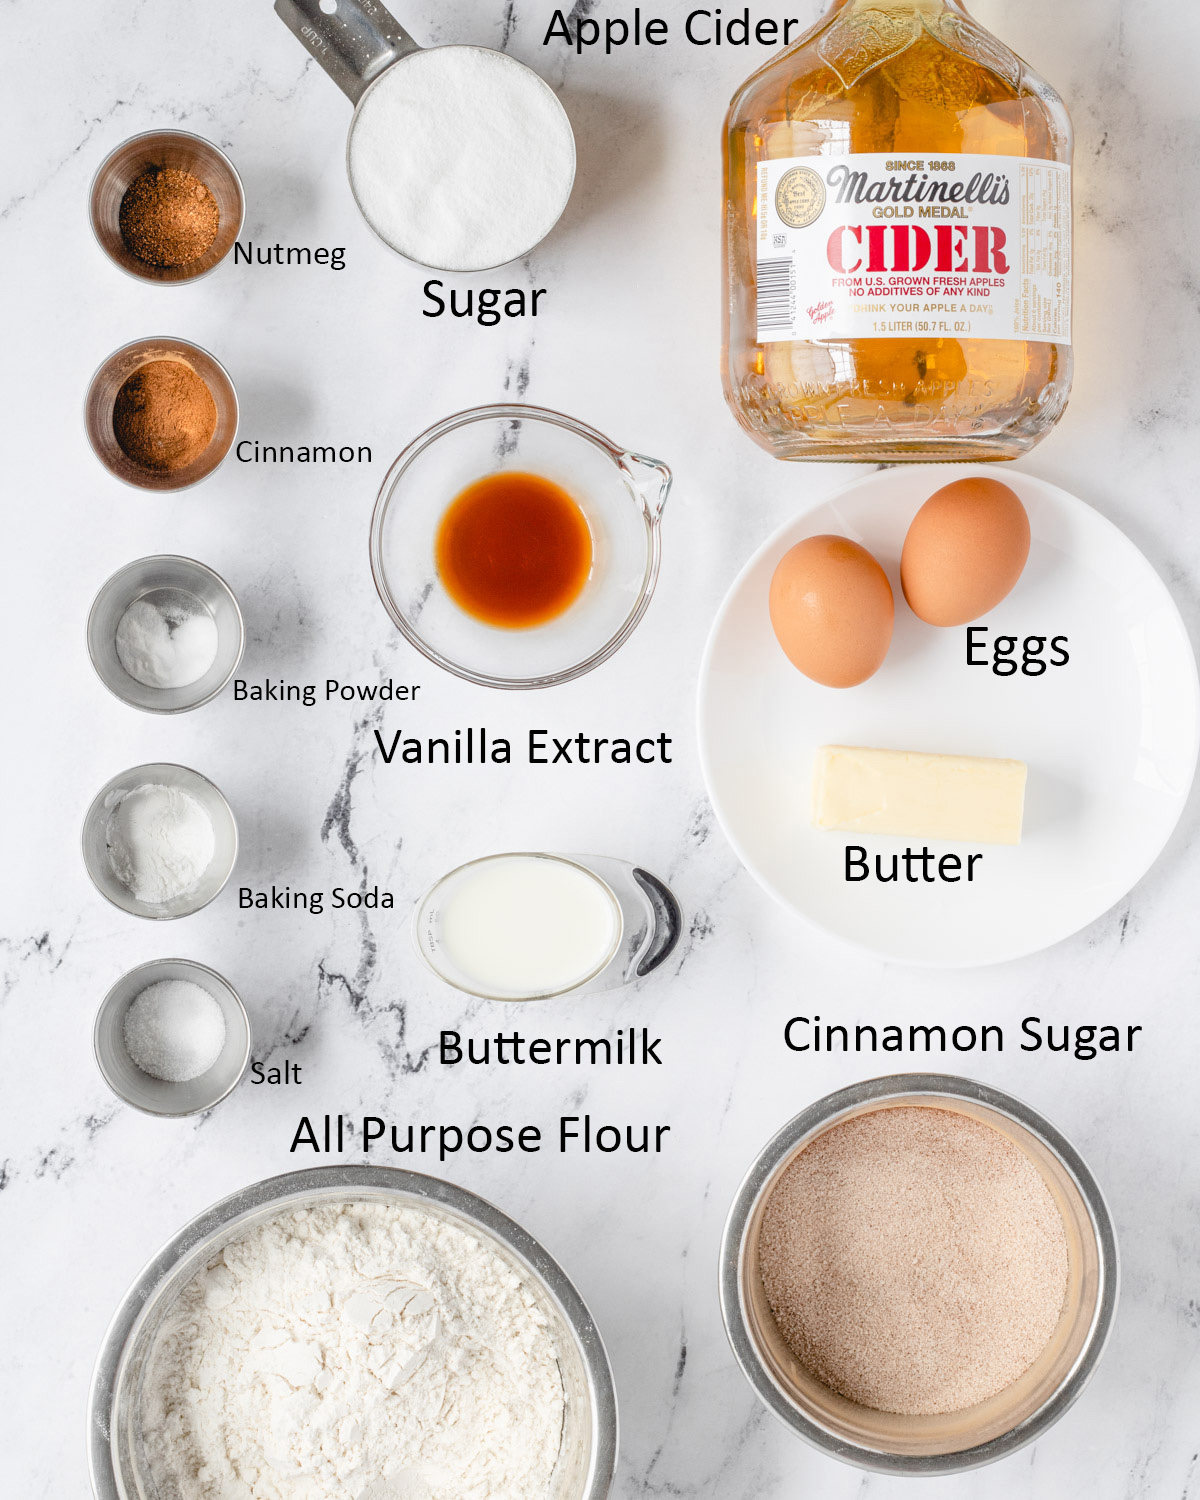 Apple cider donut ingredients laid out and labeled.